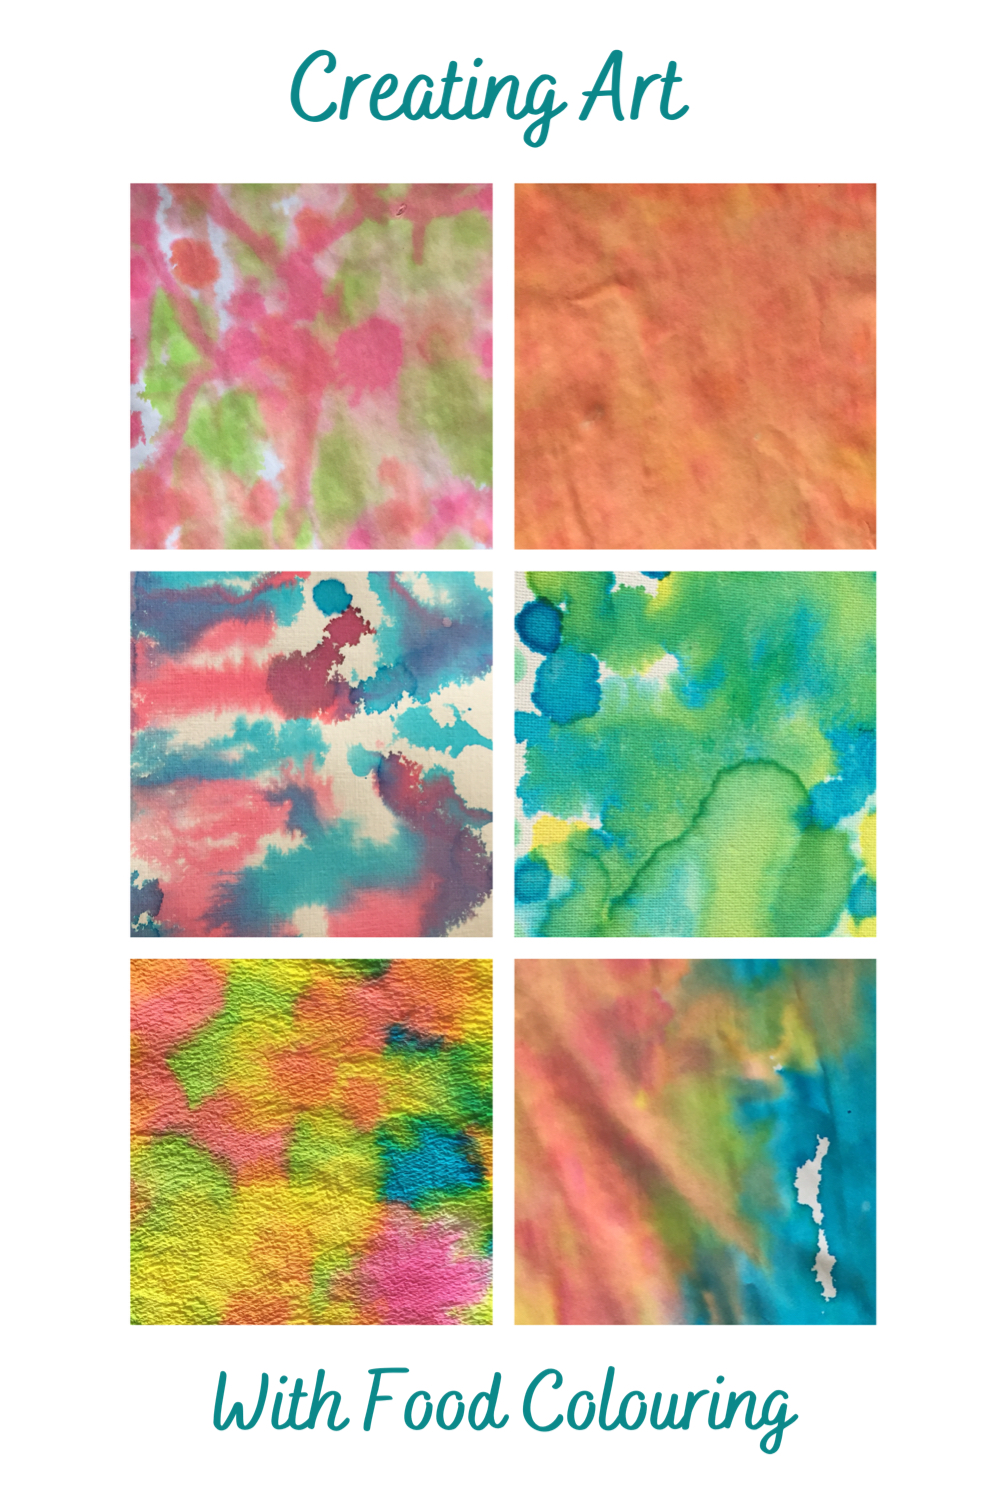 Creating Art with food colouring